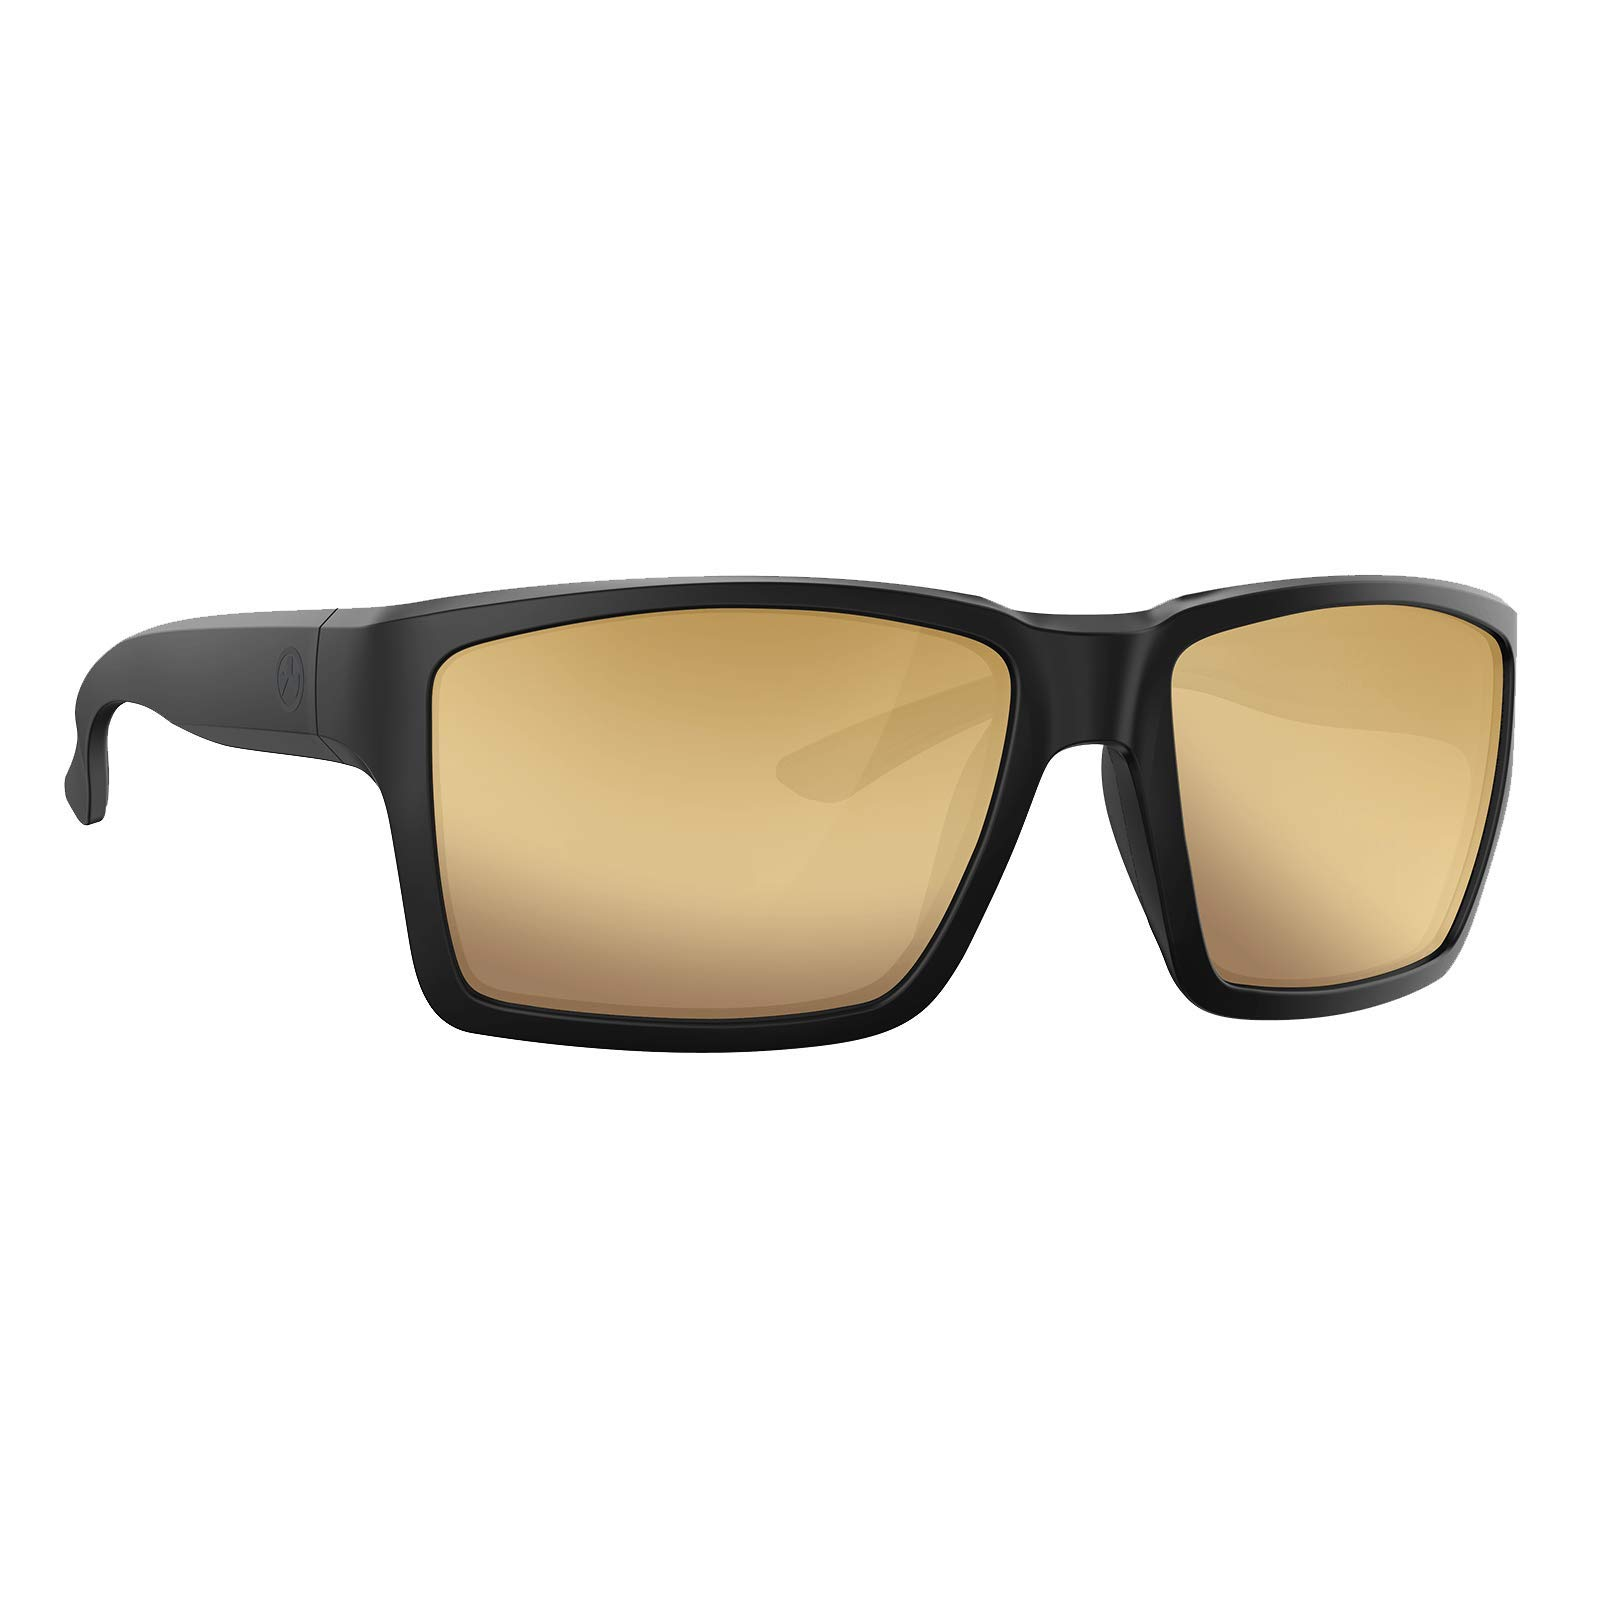 Mapgul Explorer XL Sunglasses Outdoor and Shooting Eyewear, Matte Black Frame/Bronze Lens with Gold Mirror, Polarized by Magpul